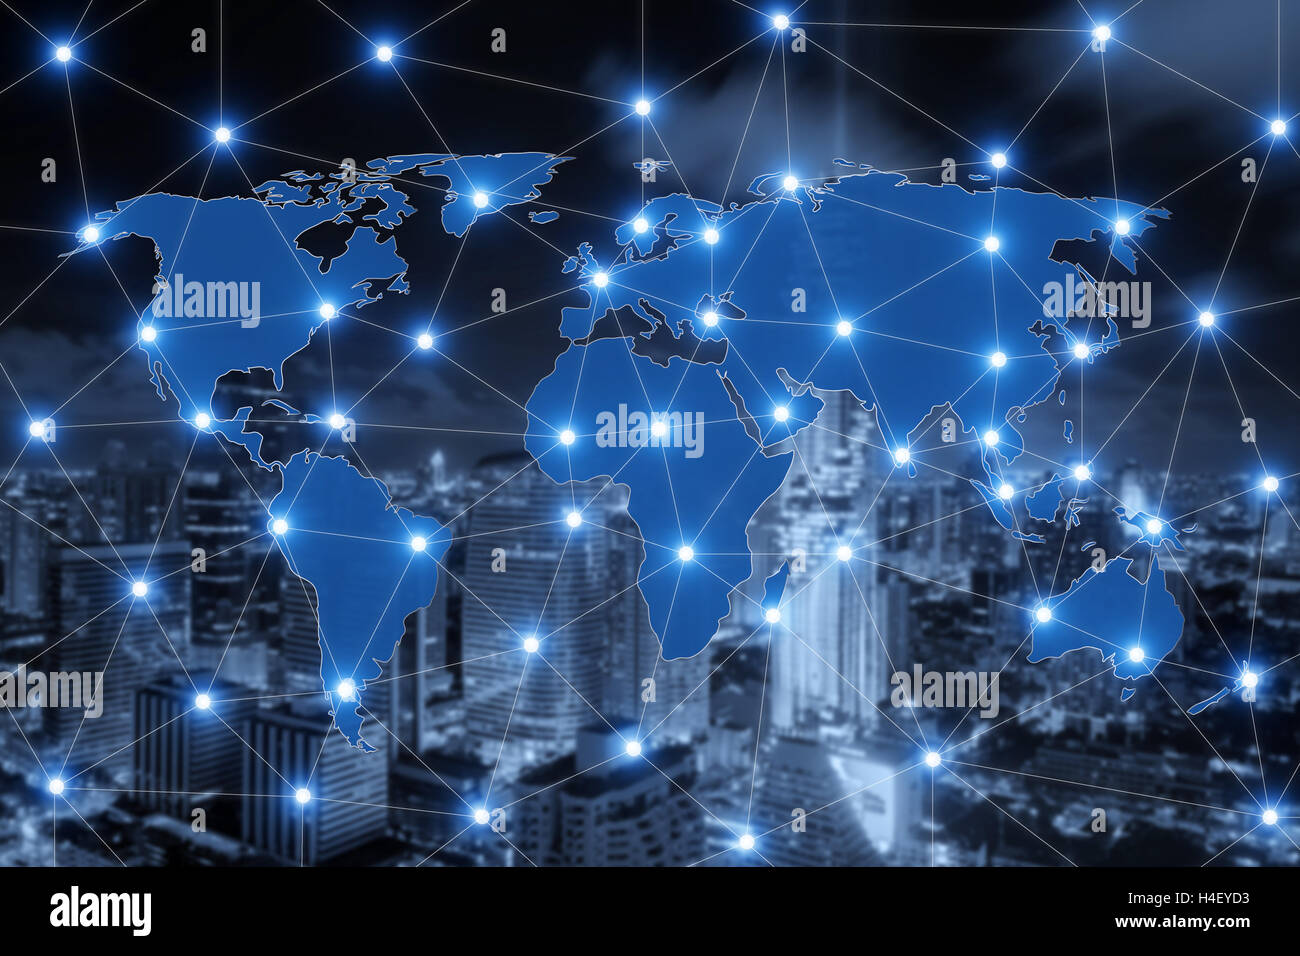 World map connection and blurred city of business center